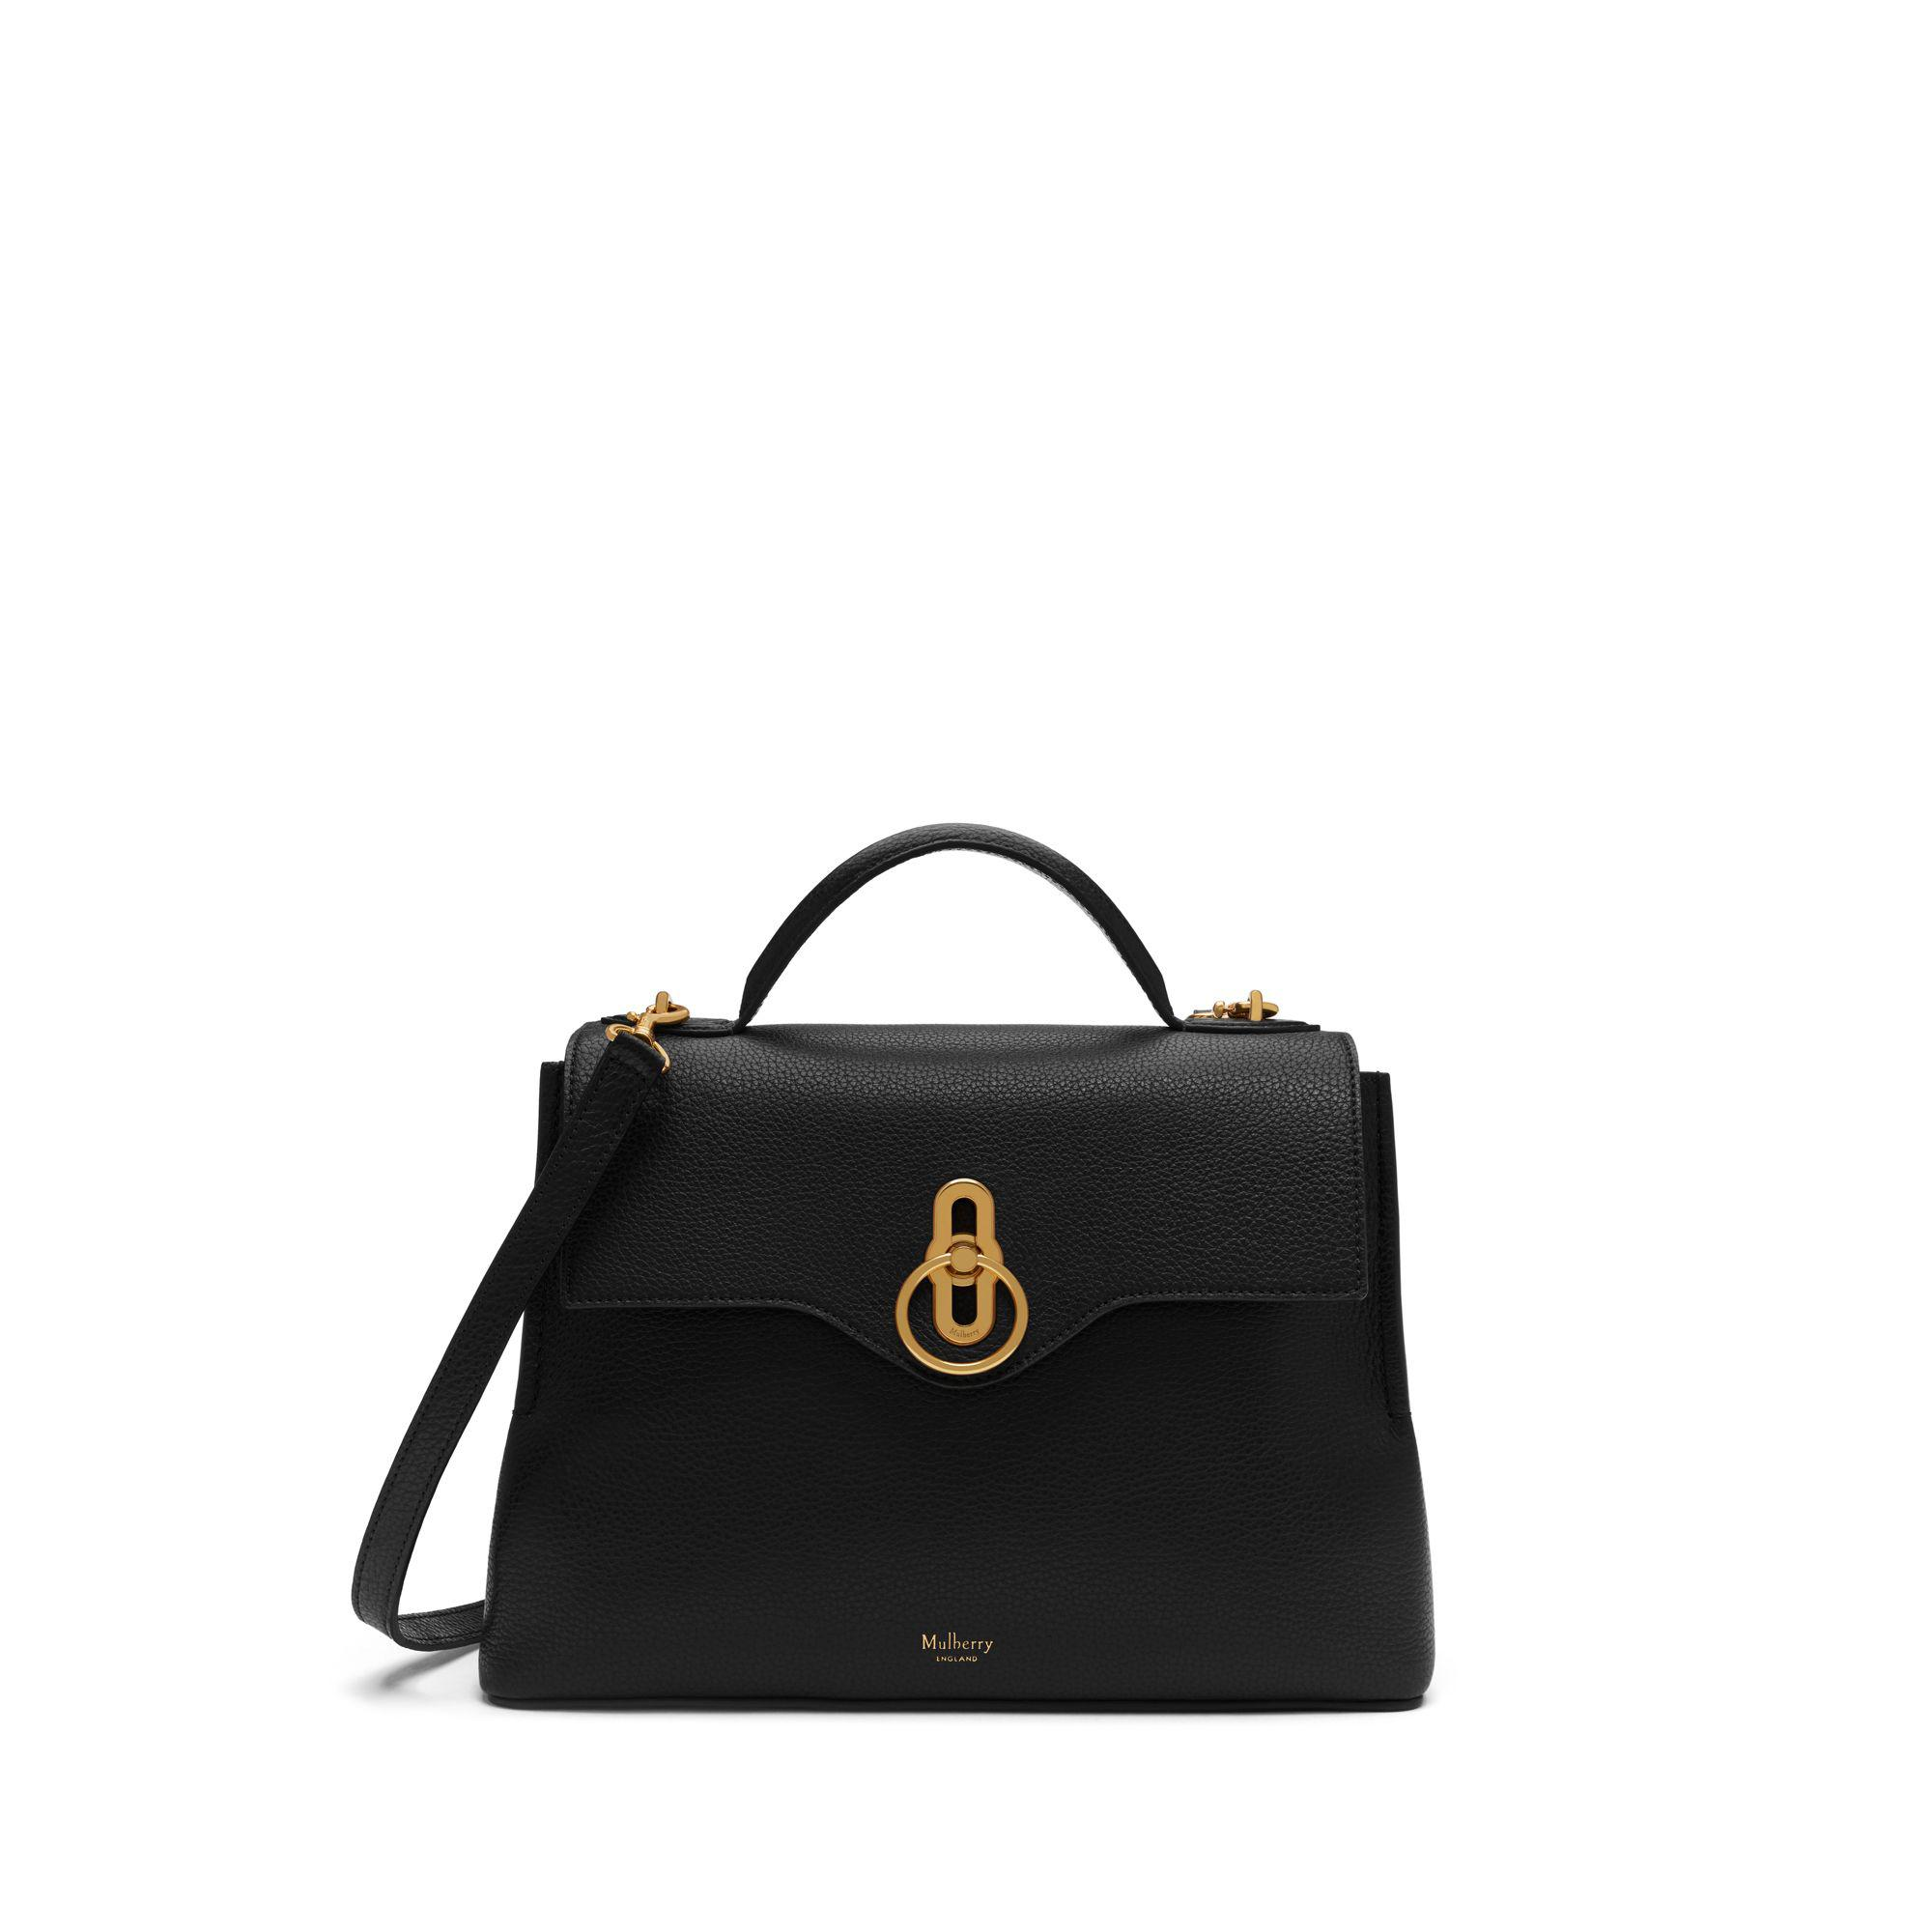 Mulberry - Small Seaton In Black Small Classic Grain - Lyst. View fullscreen 06da4e72e5f00